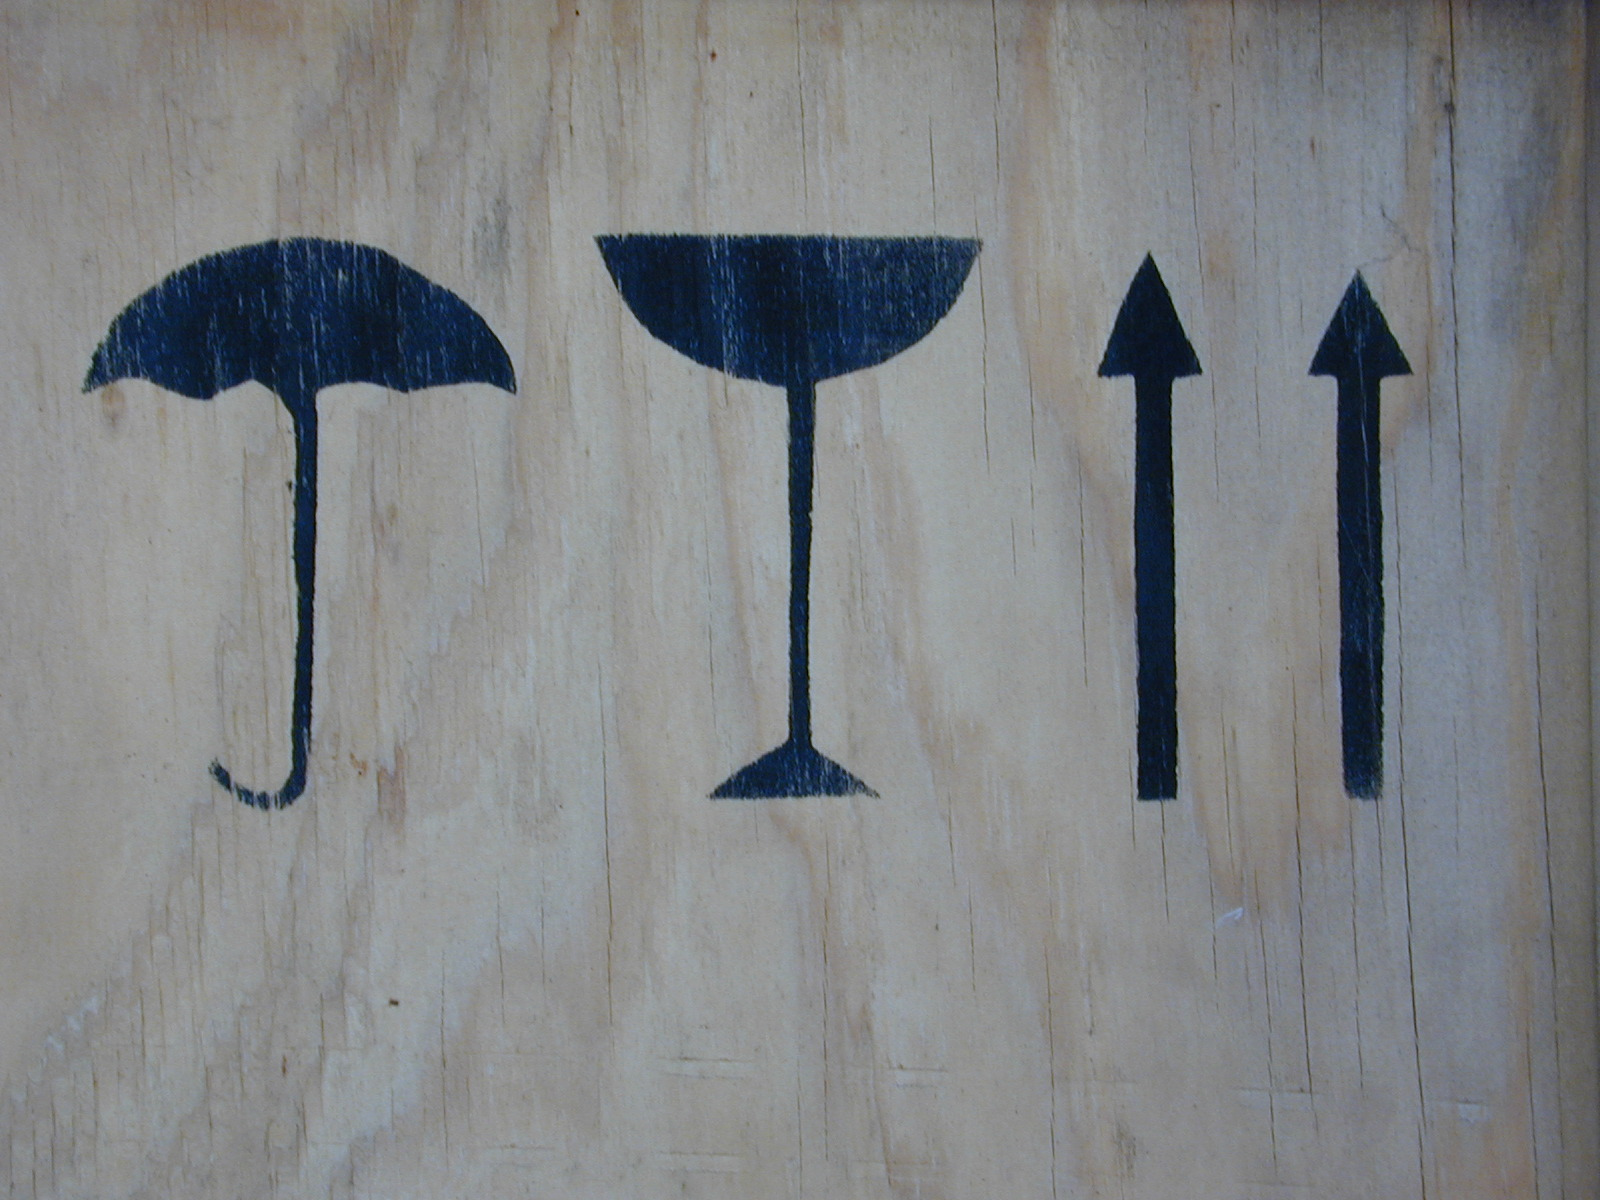 sign signs umbrella glass arrows scipt fragile this way up keep dry paint print wood